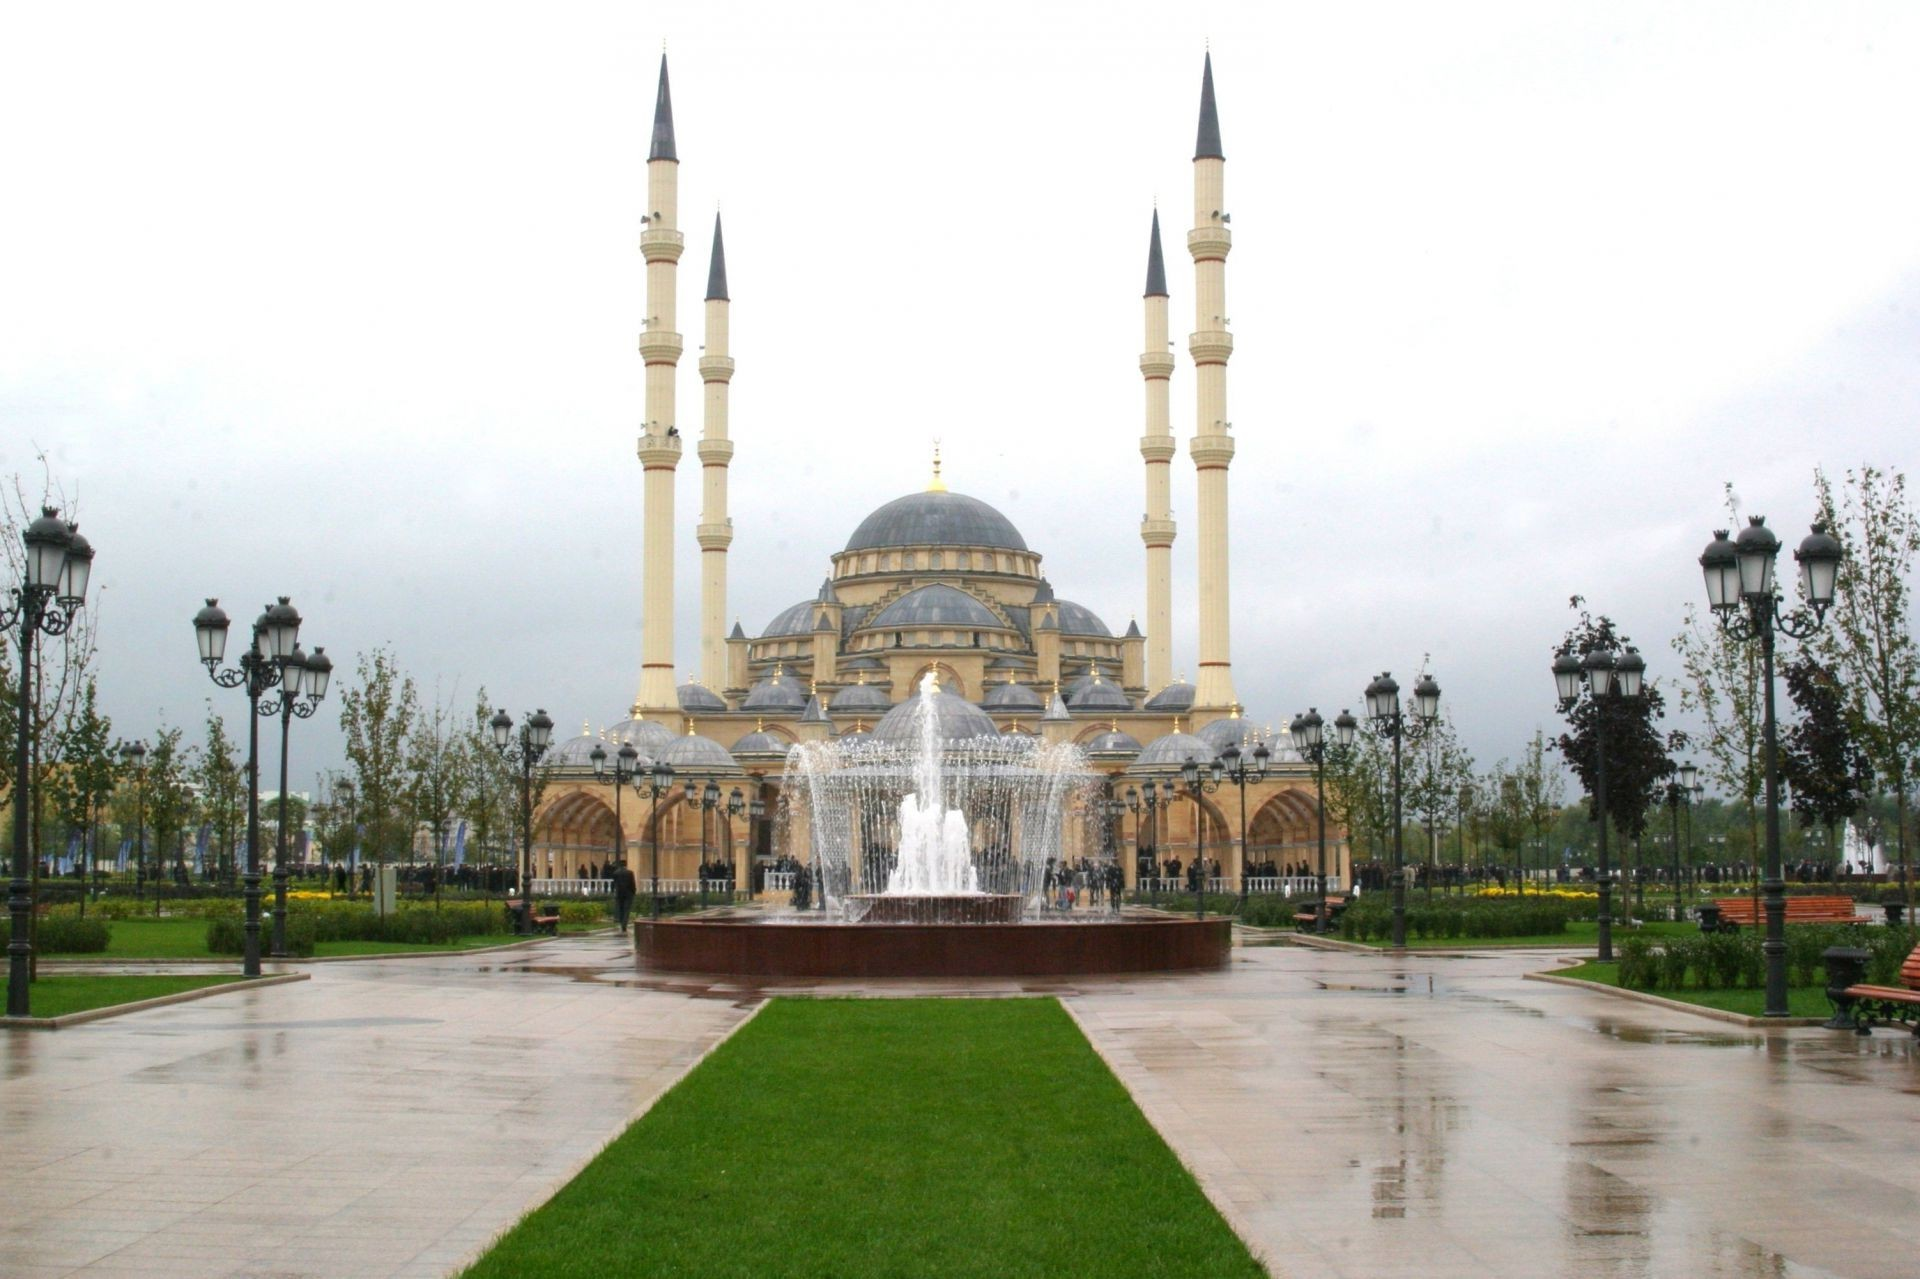 the city of fountain heart of Chechnya mosque, Grozny, Chechnya the Czech Republic